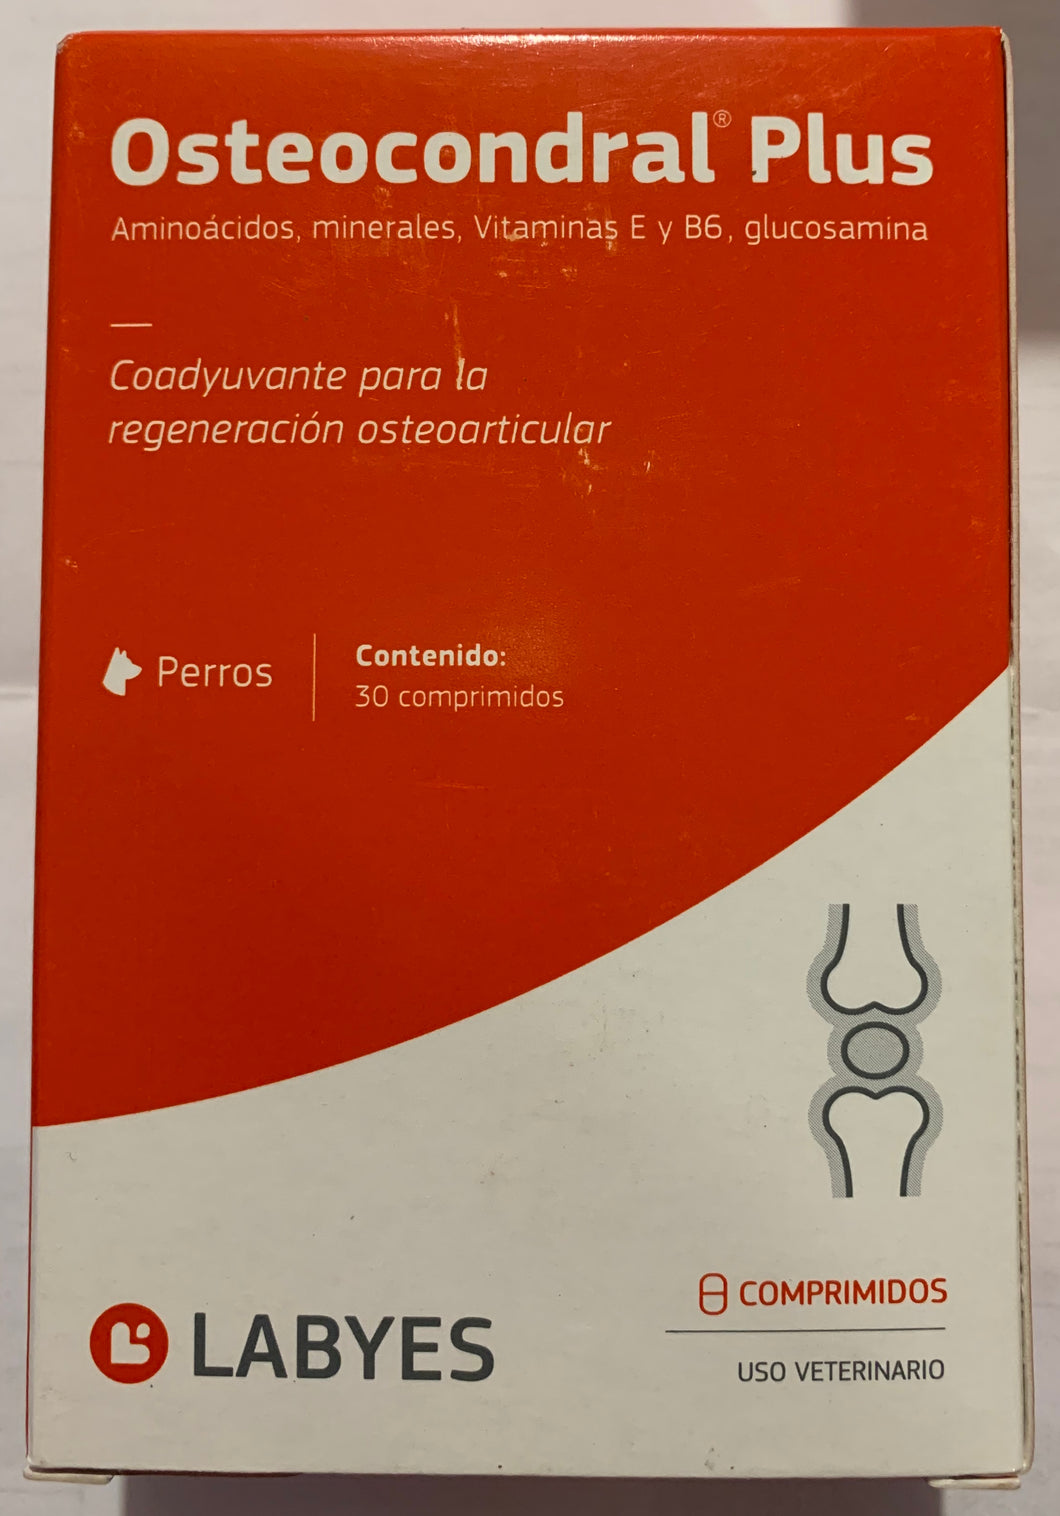 Osteocondral Plus